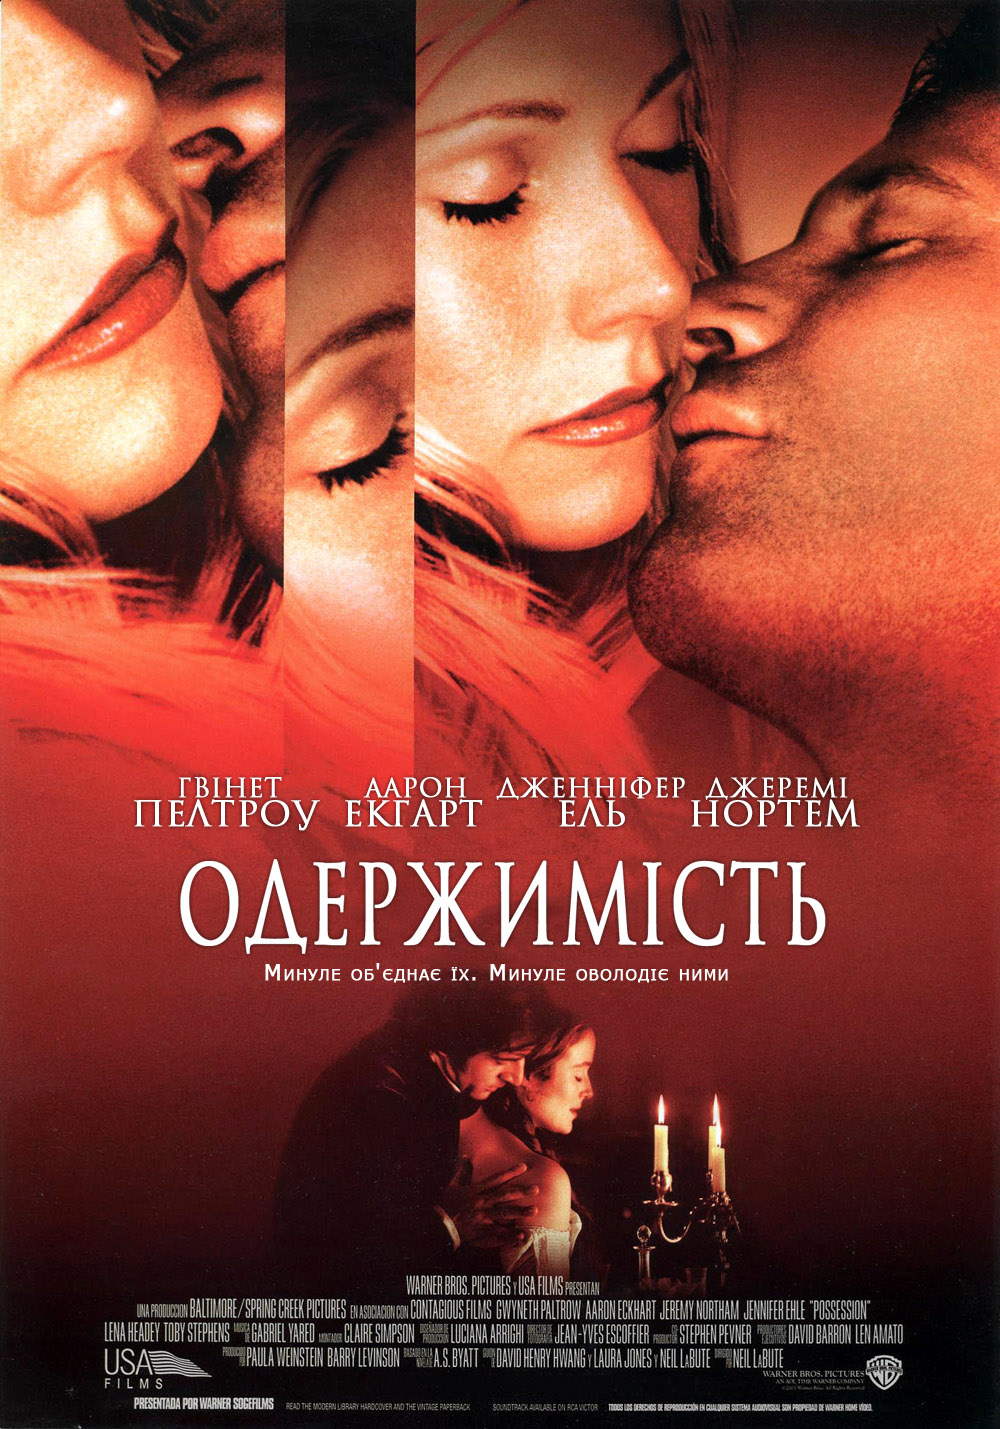 Одержимість / Possession (2002) Ukr/Eng | sub Eng